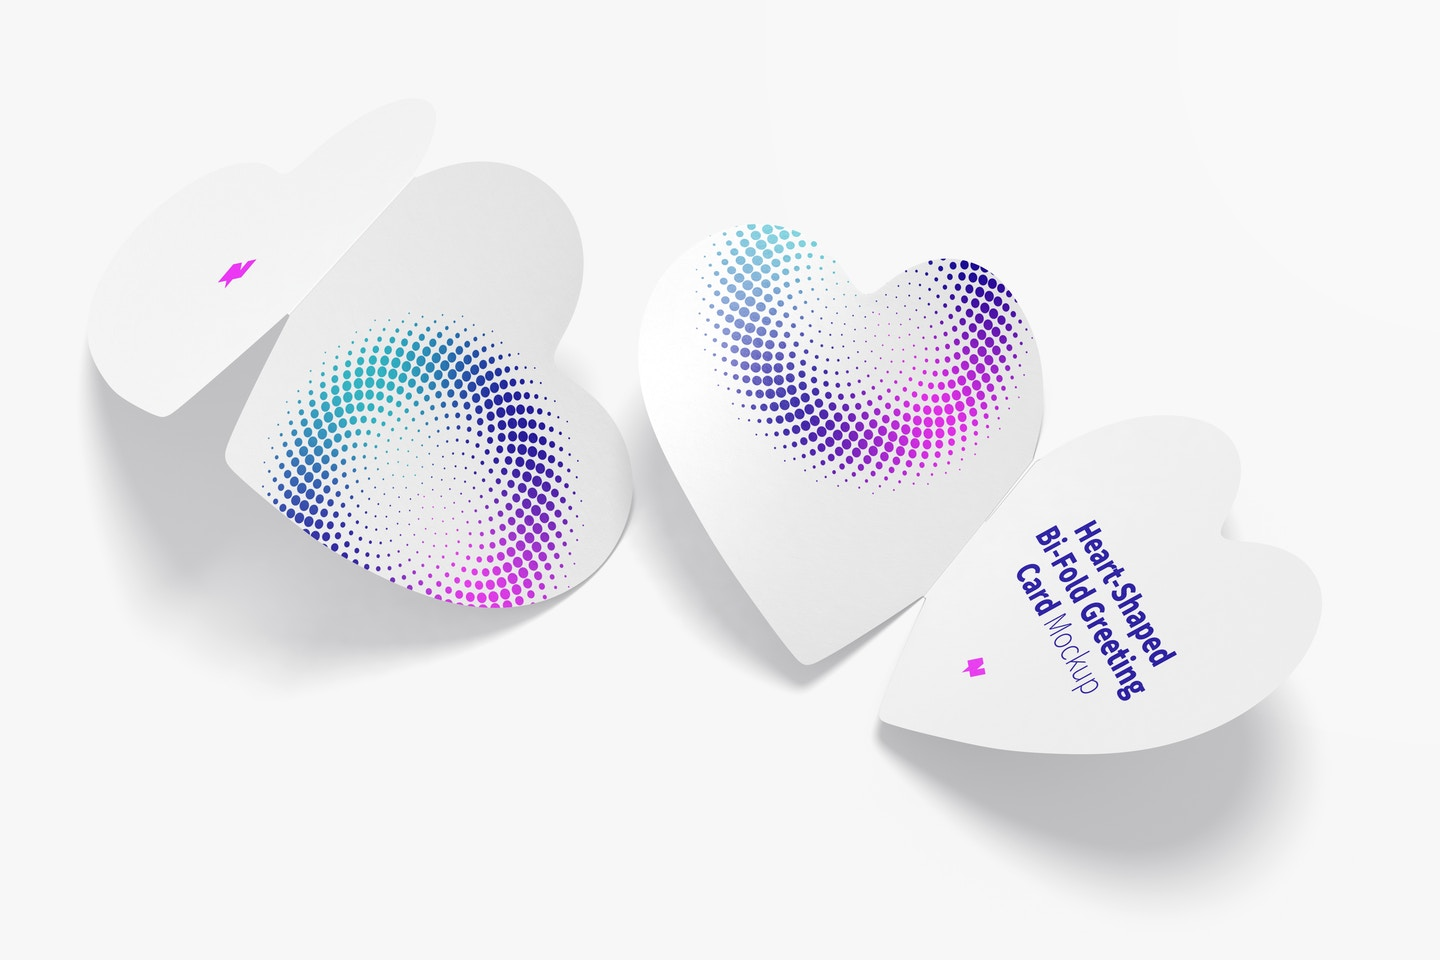 Heart-Shaped Bi-Fold Greeting Cards Mockup, Back and Front View